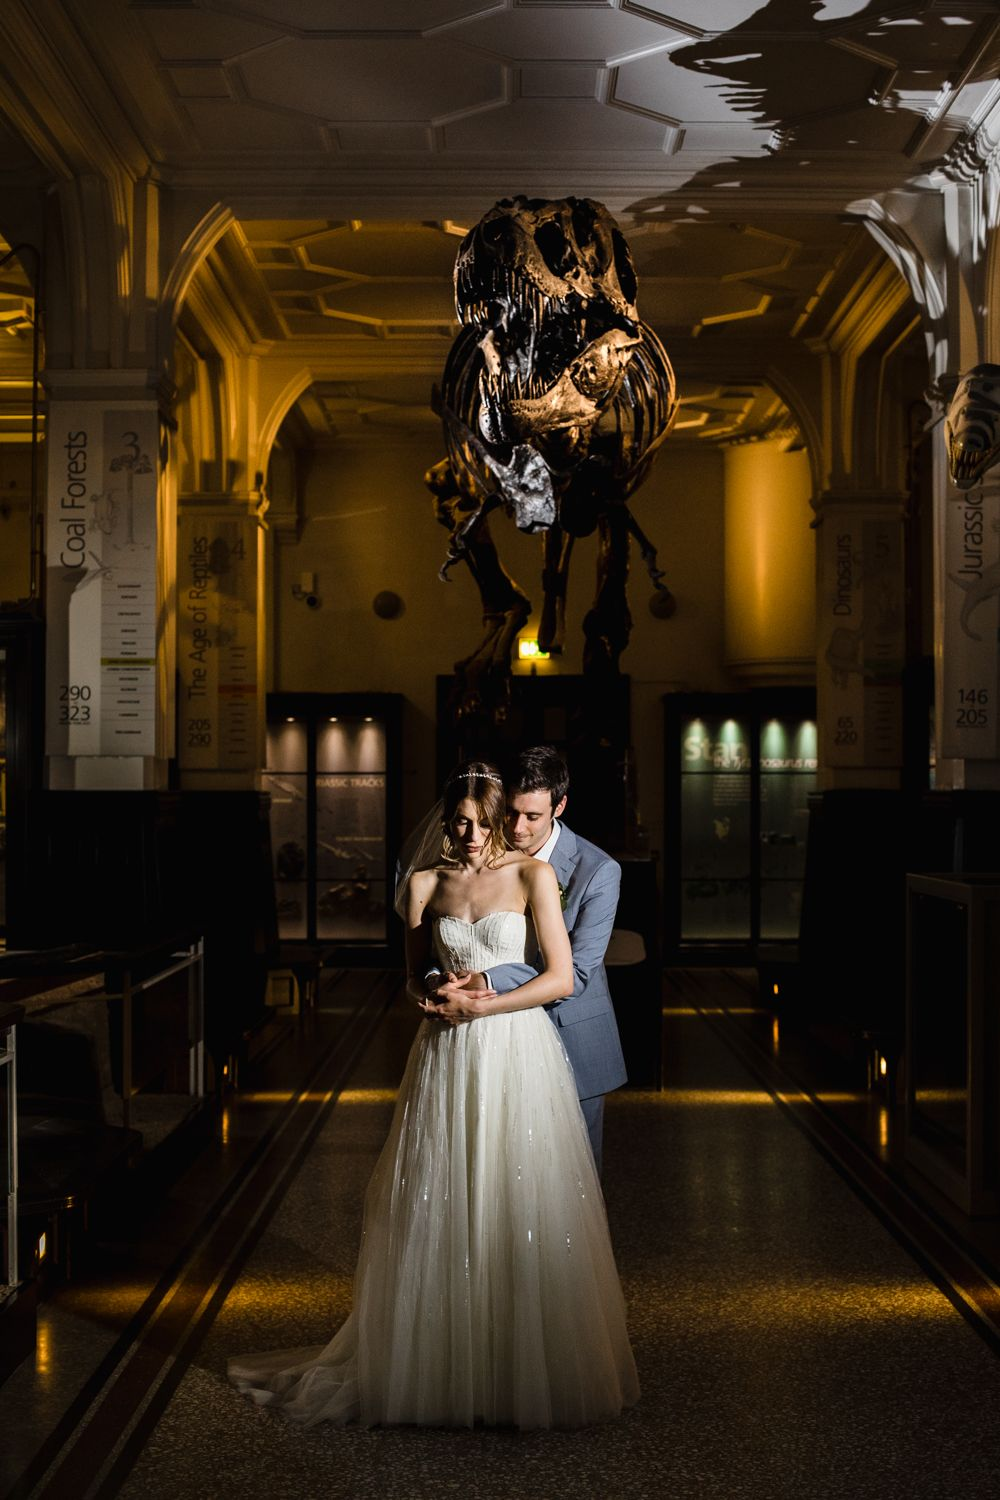 Manchester Museum Wedding Complete With Dinosaurs in the